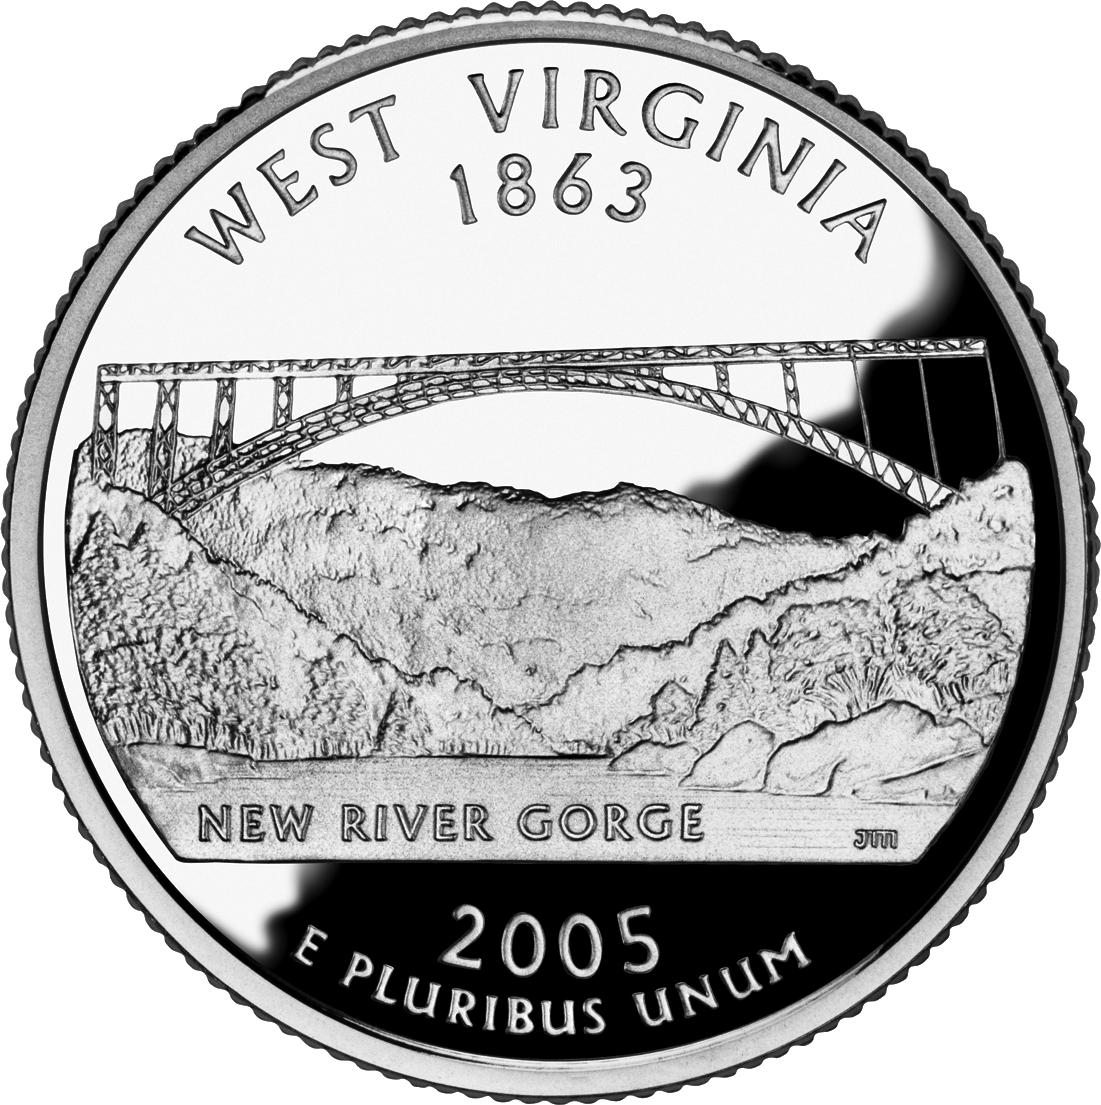 West Virginia state quarter picturing the New River Gorger Bridge. Engraved by John Mercanti, it was released on October 14, 2005, in a mintage of 721,600,000.